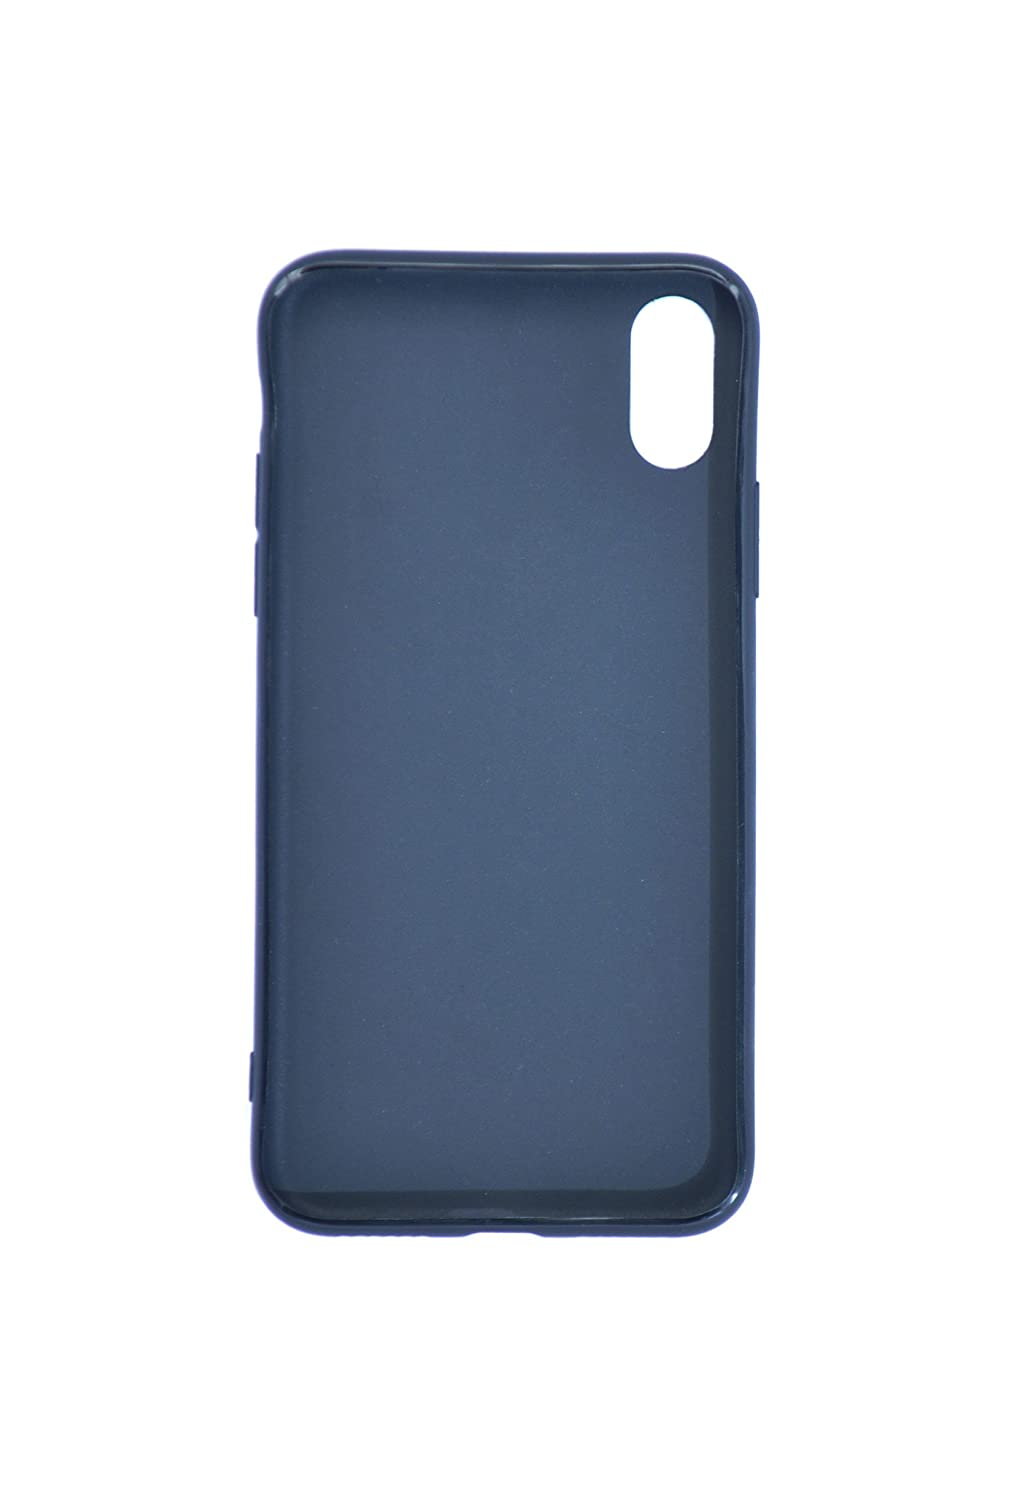 detailed look 23870 2bf41 Amazon.com: iPhone X doubl SIM case, Dual Sim Adapter kit Two sim ...